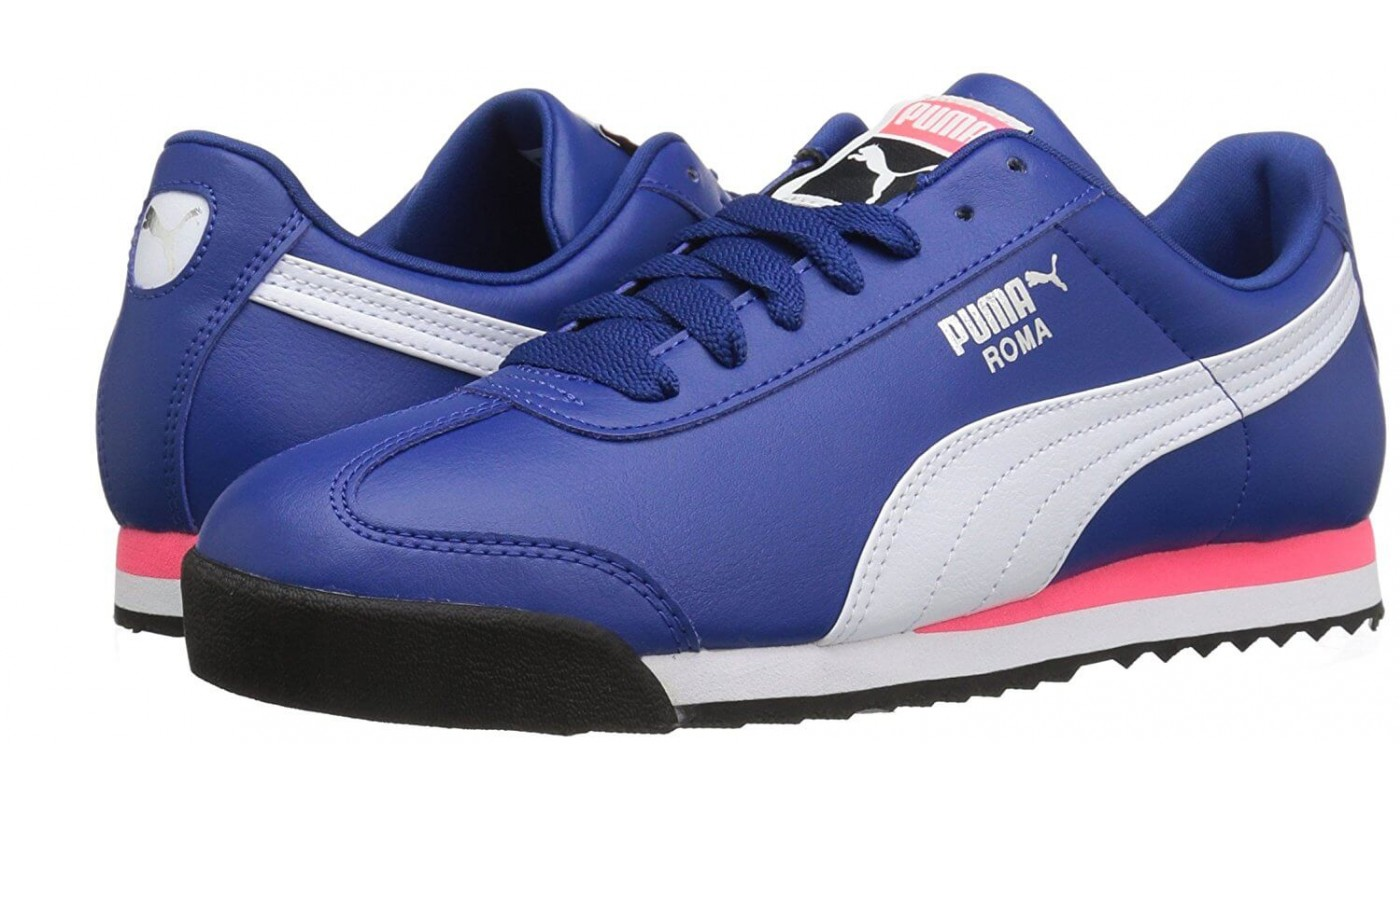 The Puma Roma features midfoot arch support